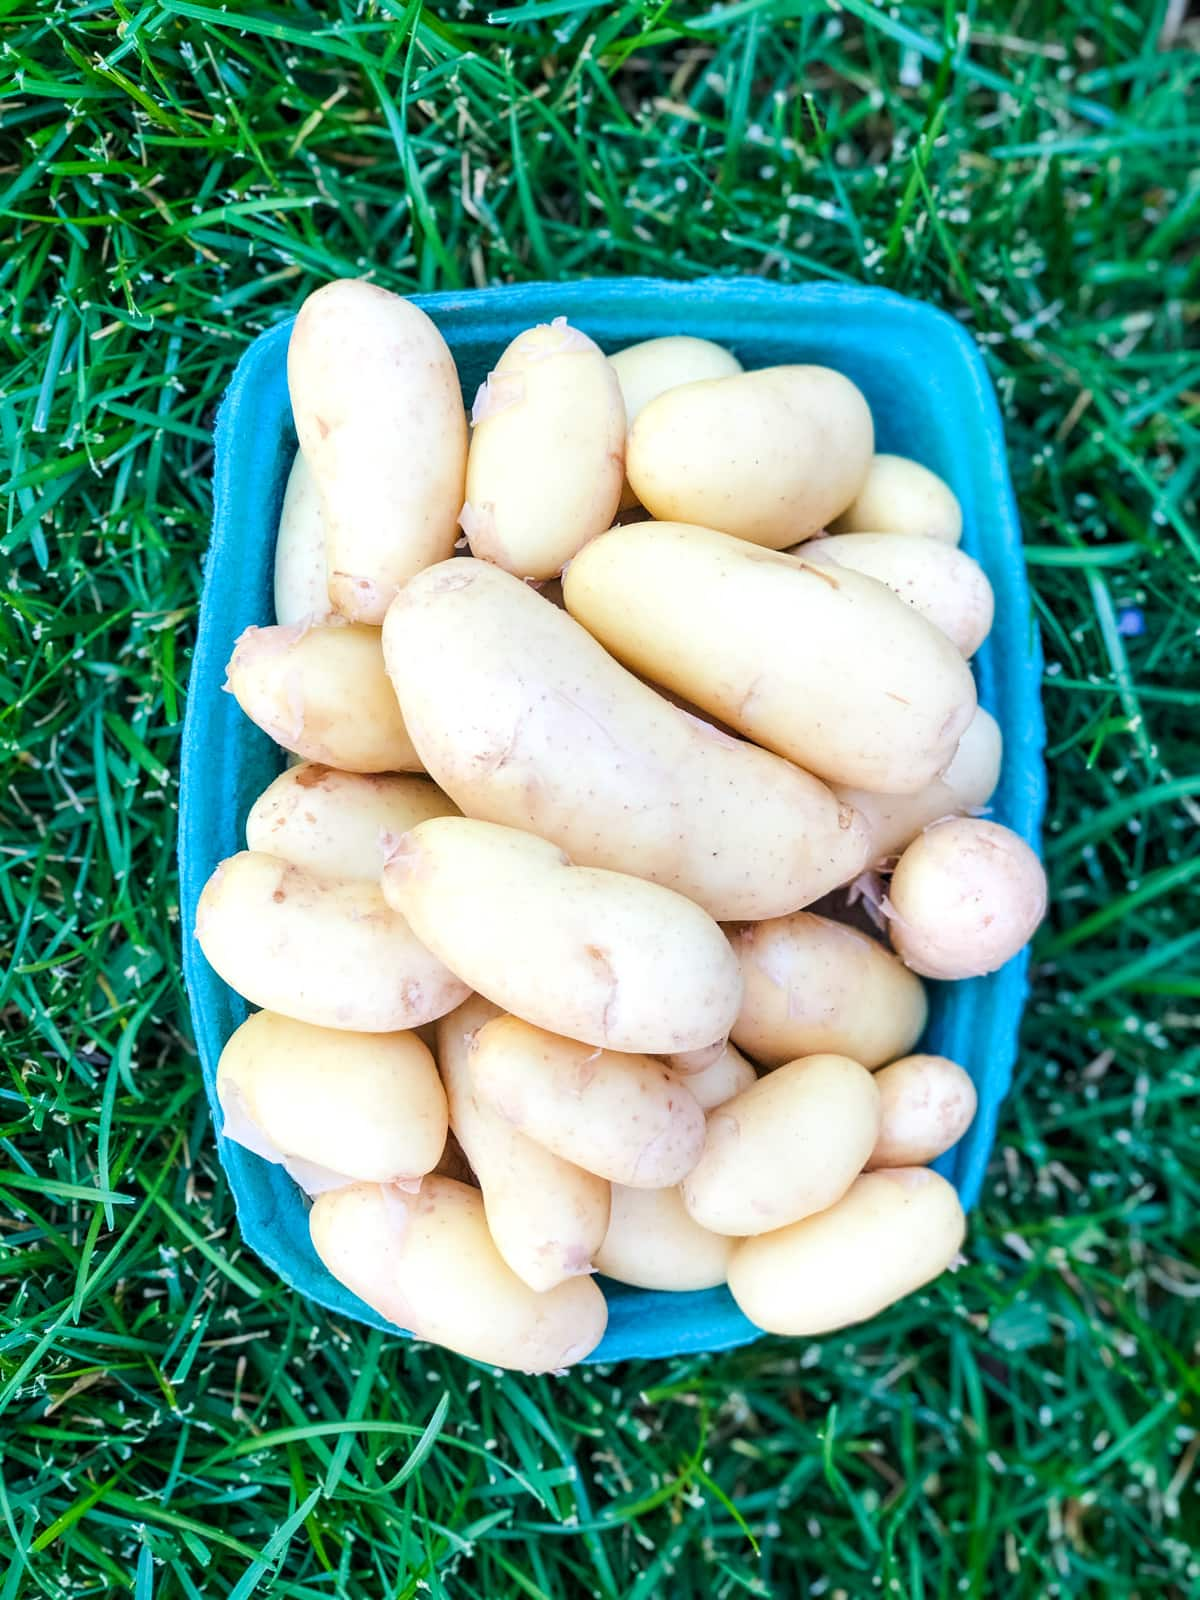 Recipes for Potatoes from the Farmers' Market